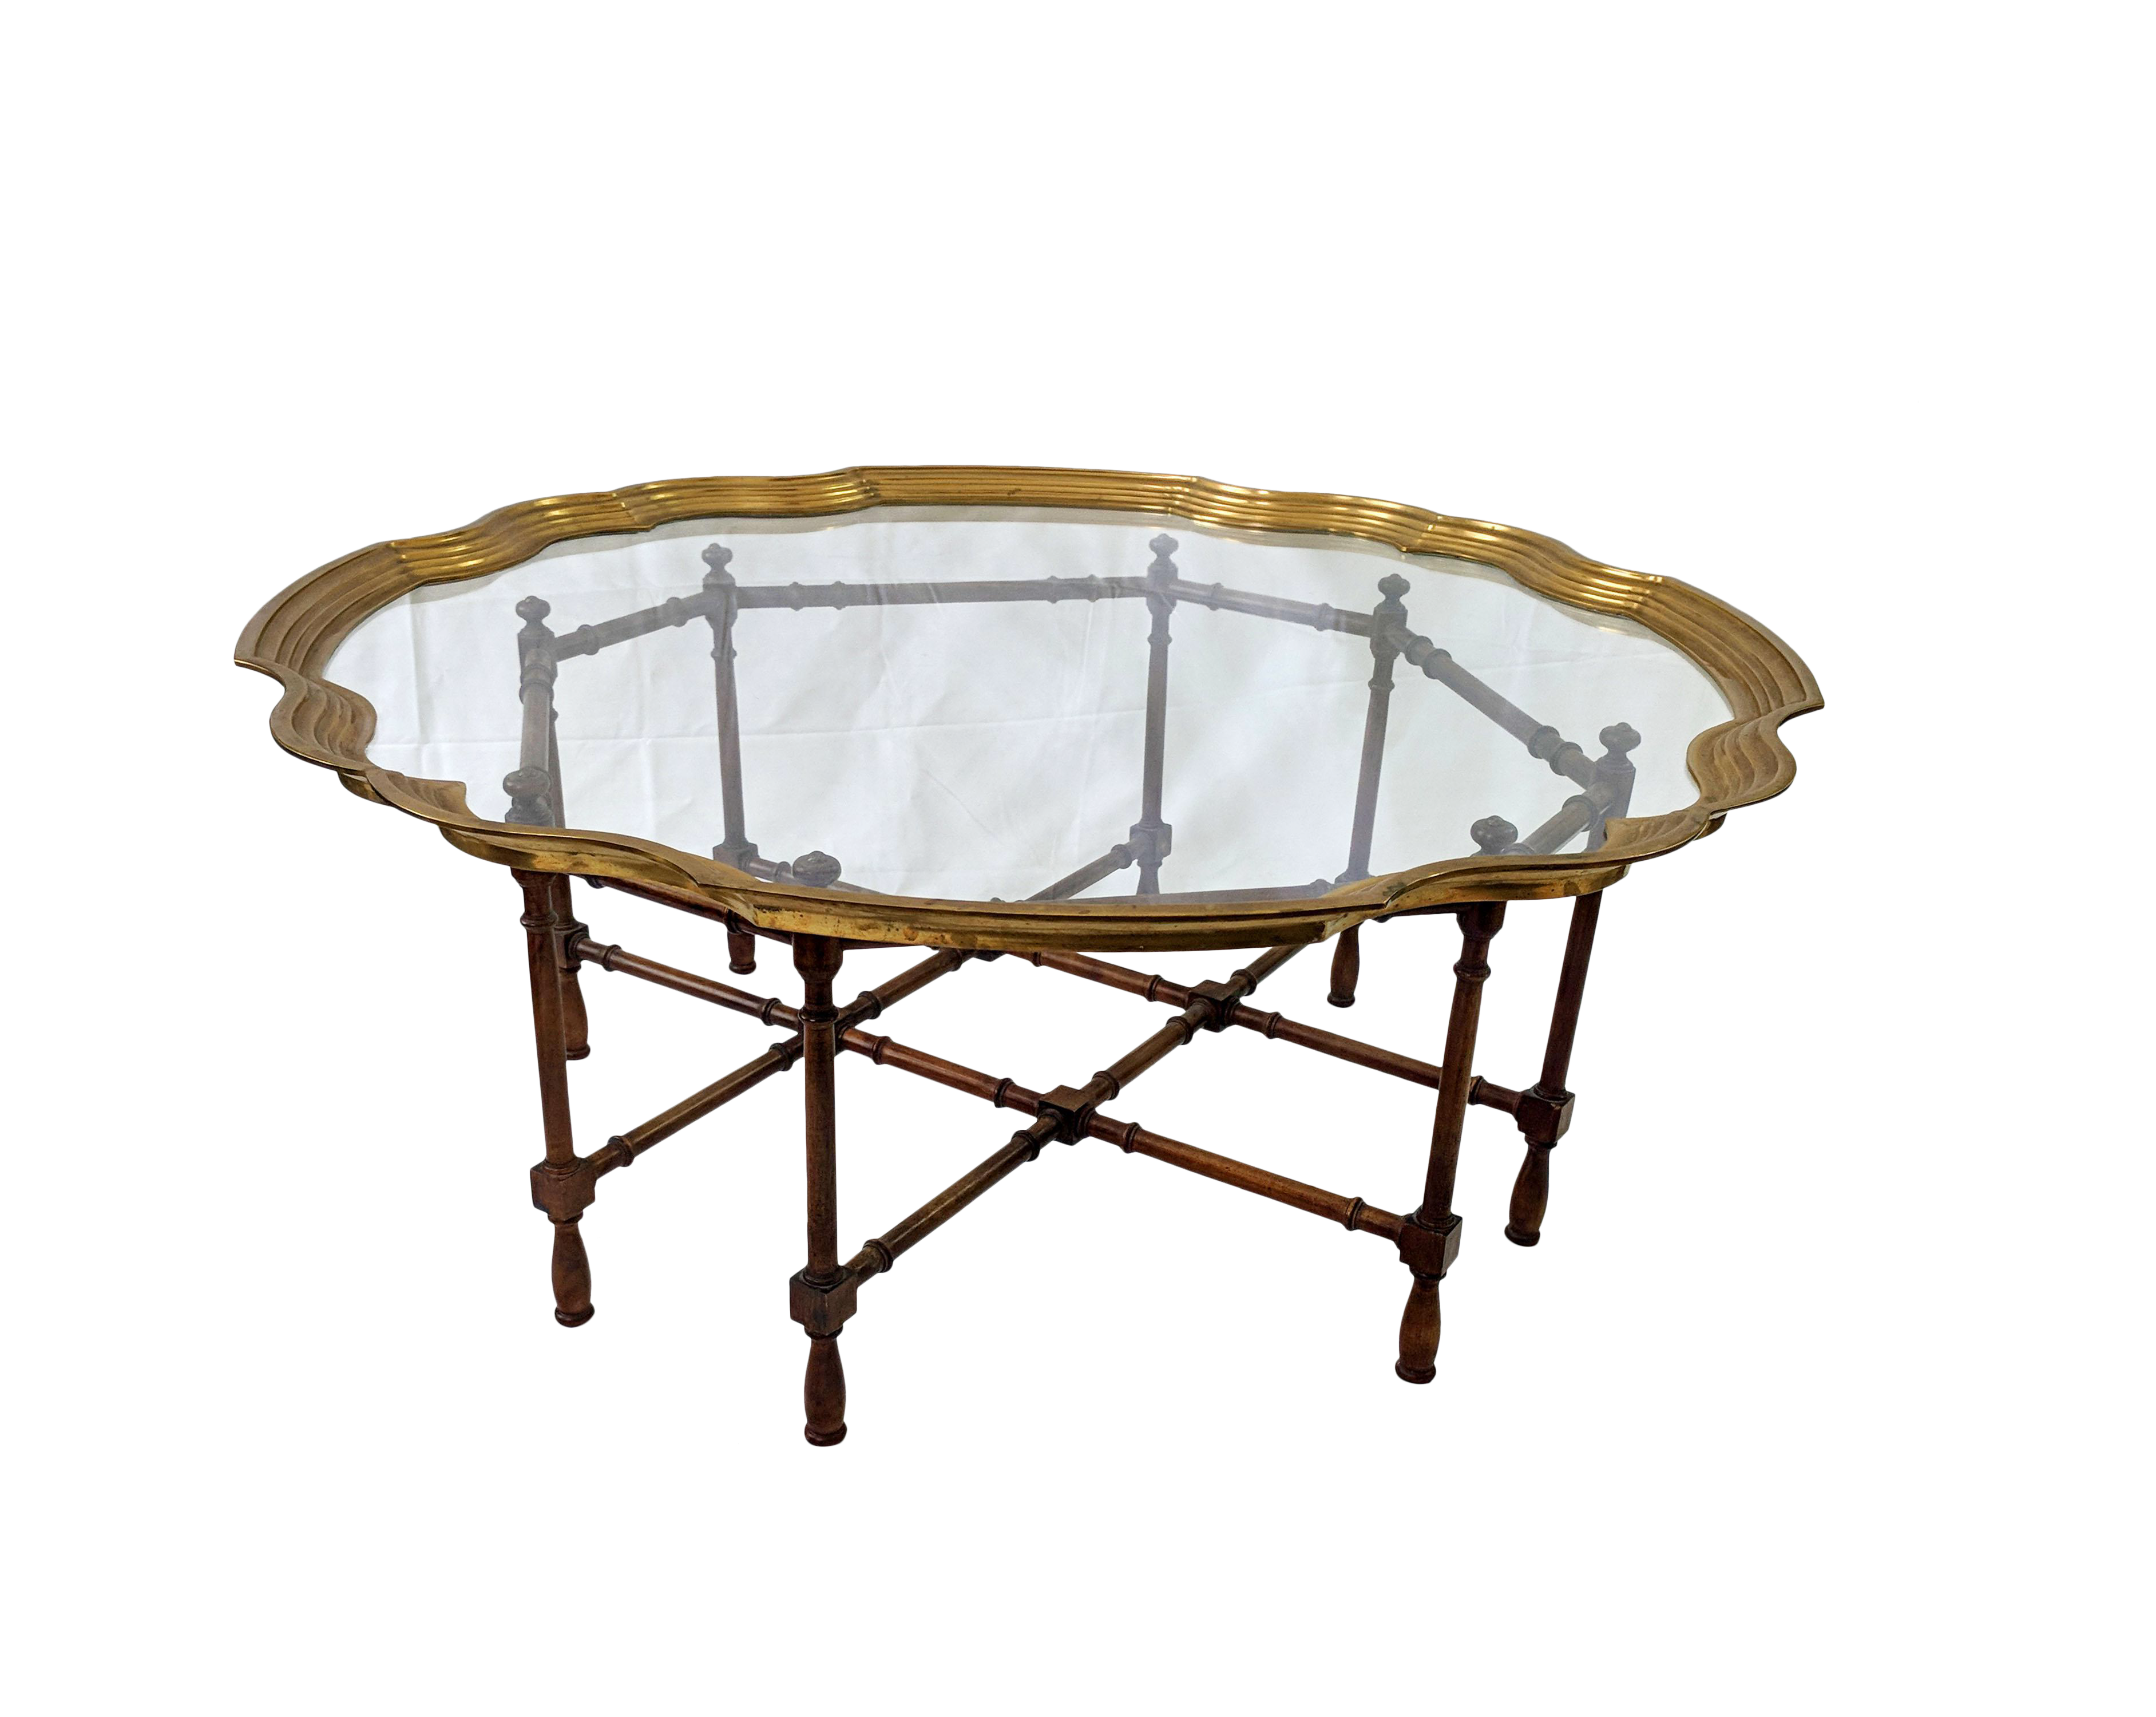 Merveilleux 1960s Boho Chic Baker Furniture Co. Faux Bamboo Glass And Brass Coffee  Table For Sale